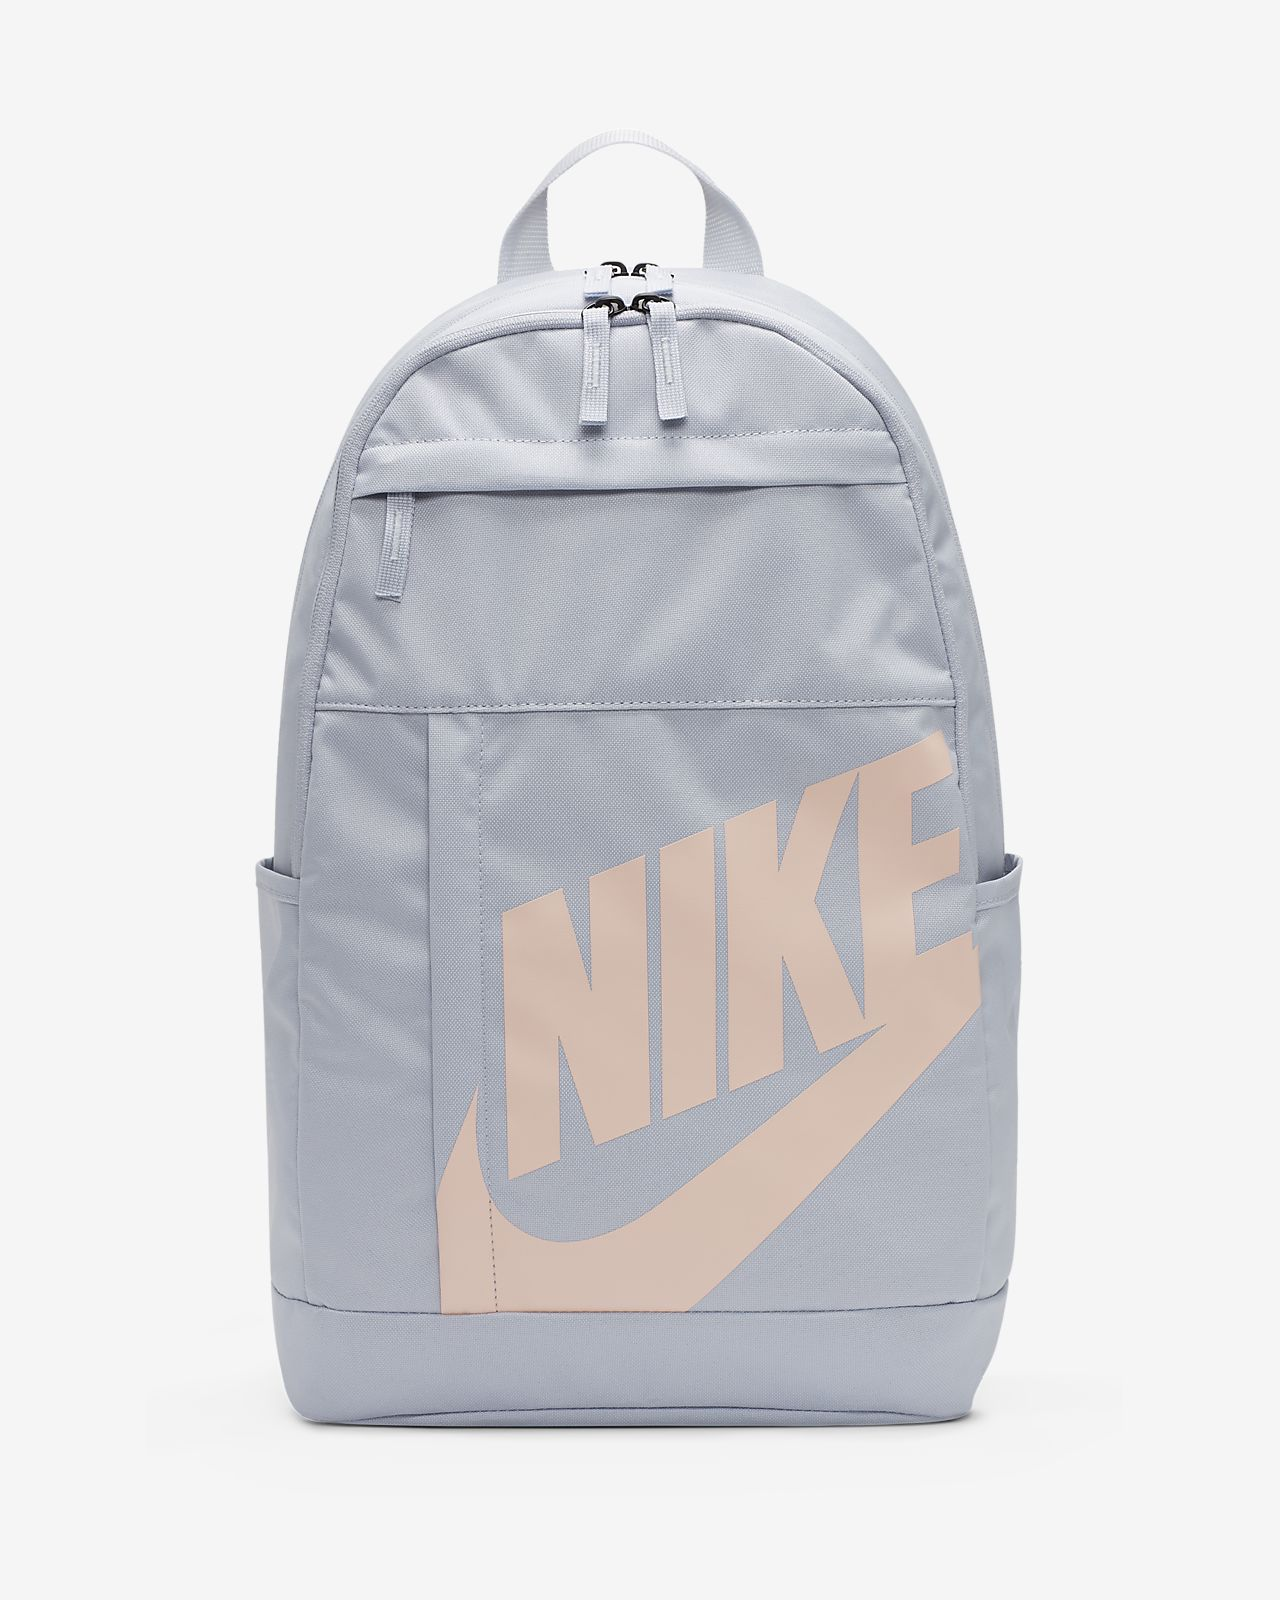 Latest Nike Vapor Bags Cheap Price March 2020 in the